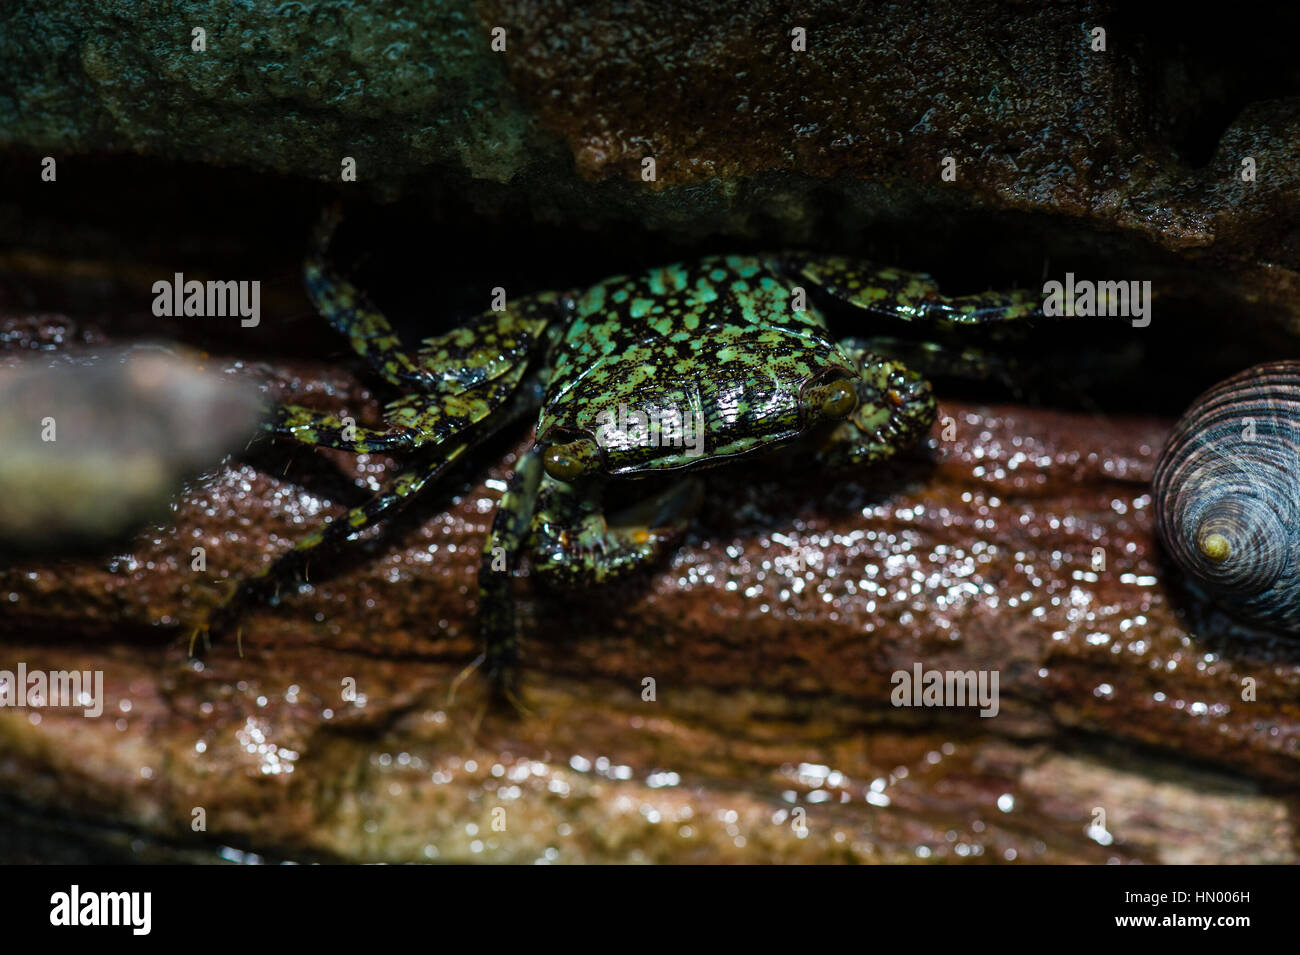 A Pale-lined Tropical Rock Crab hiding in a crevasse on a cliff at low tide. - Stock Image